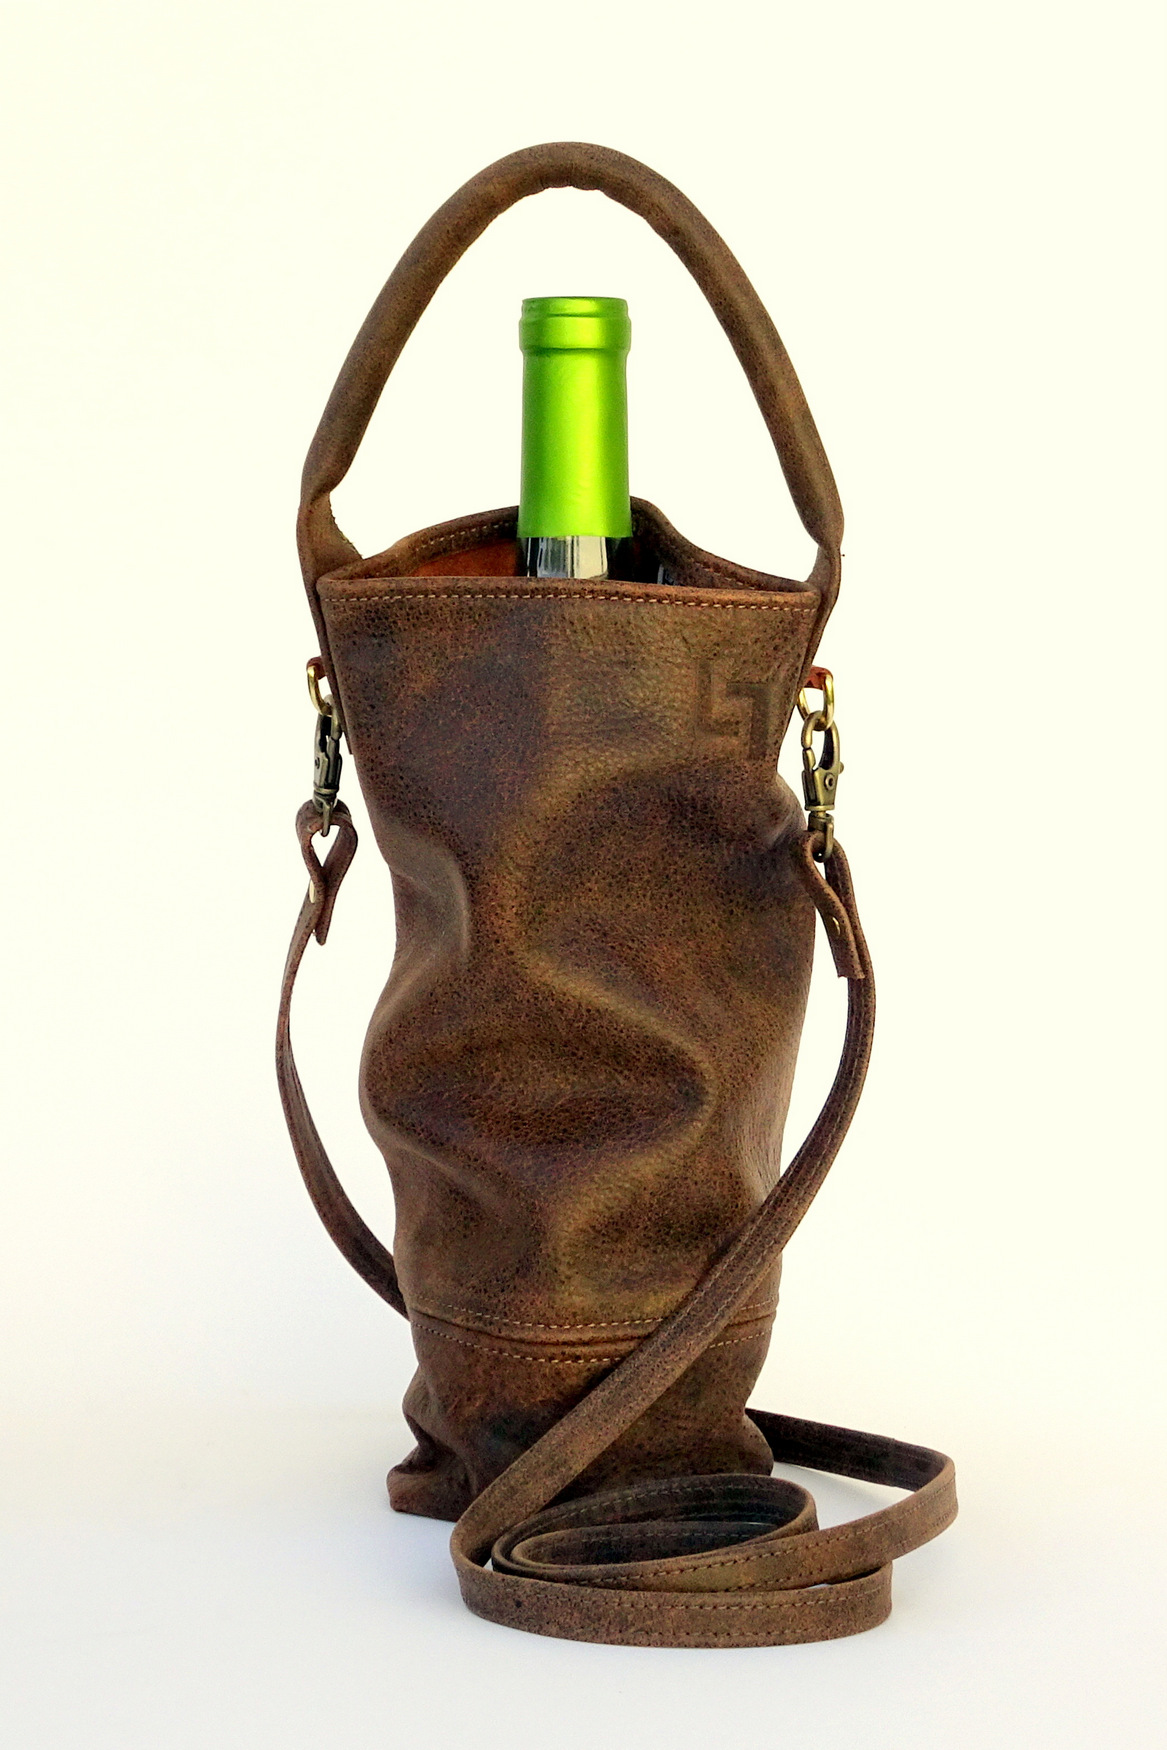 3-Handcrafted Leather Wine Tote Bags, LaPlace Leather, Tennessee-002.JPG